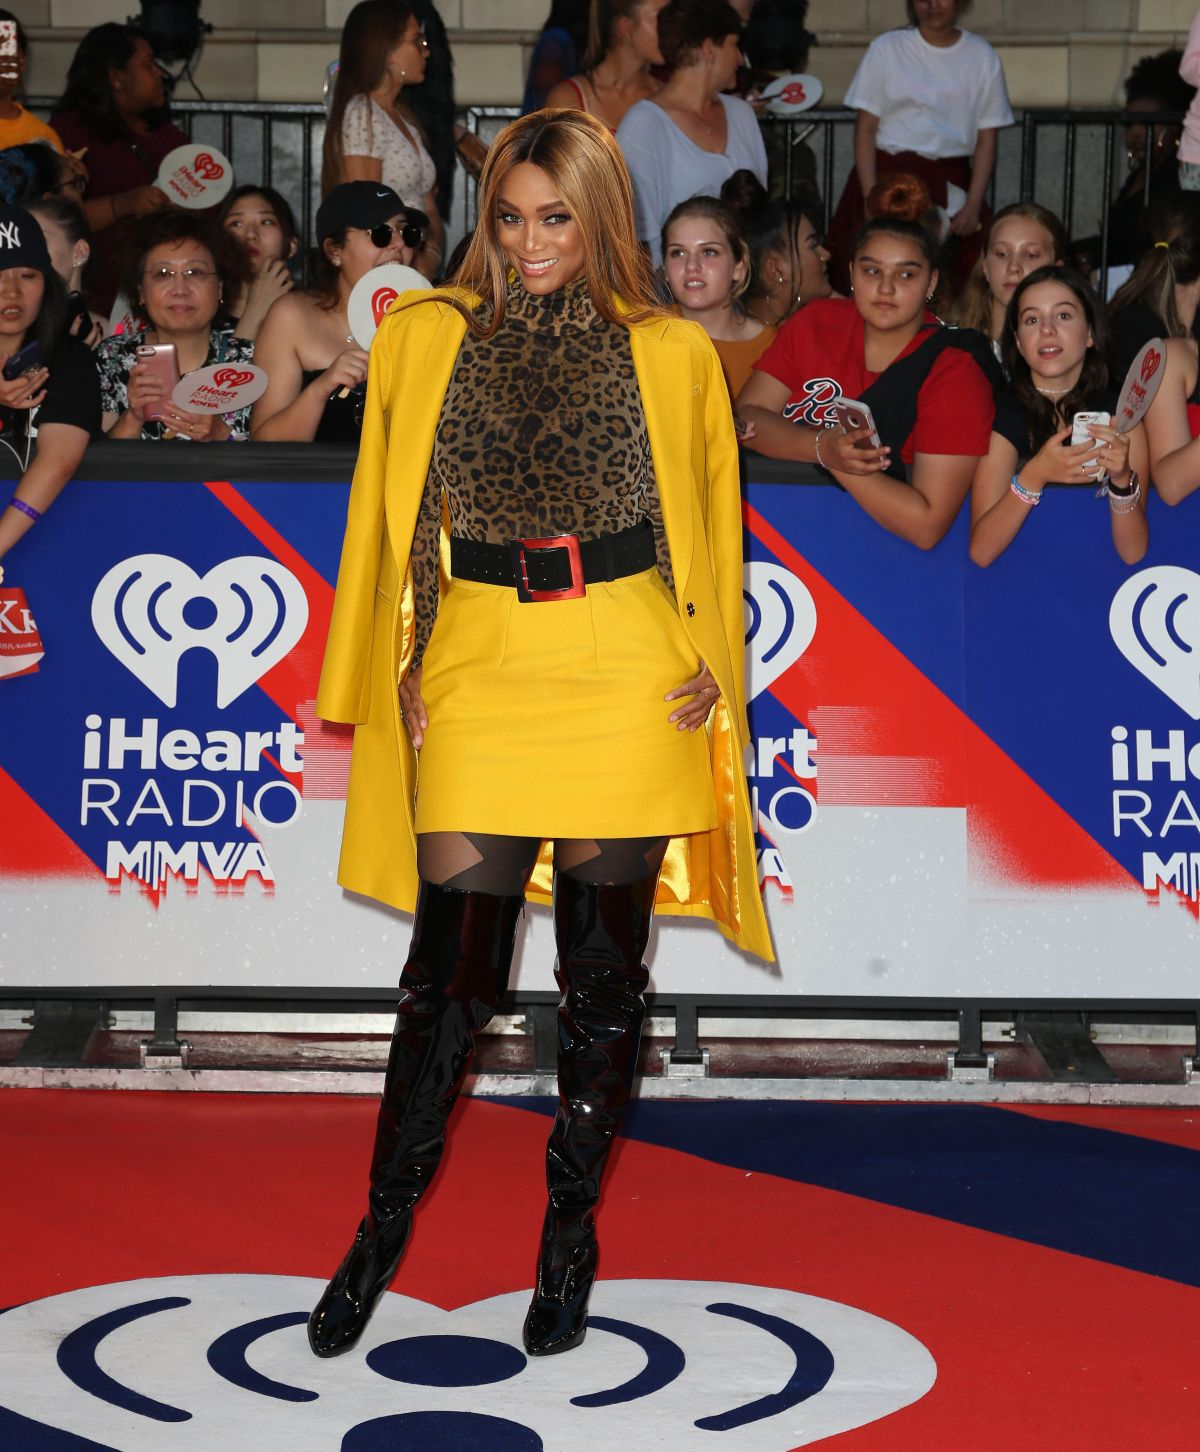 Tyra Banks Music Video: Tyra Banks On Red Carpet Of The MuchMusic Video Awards In